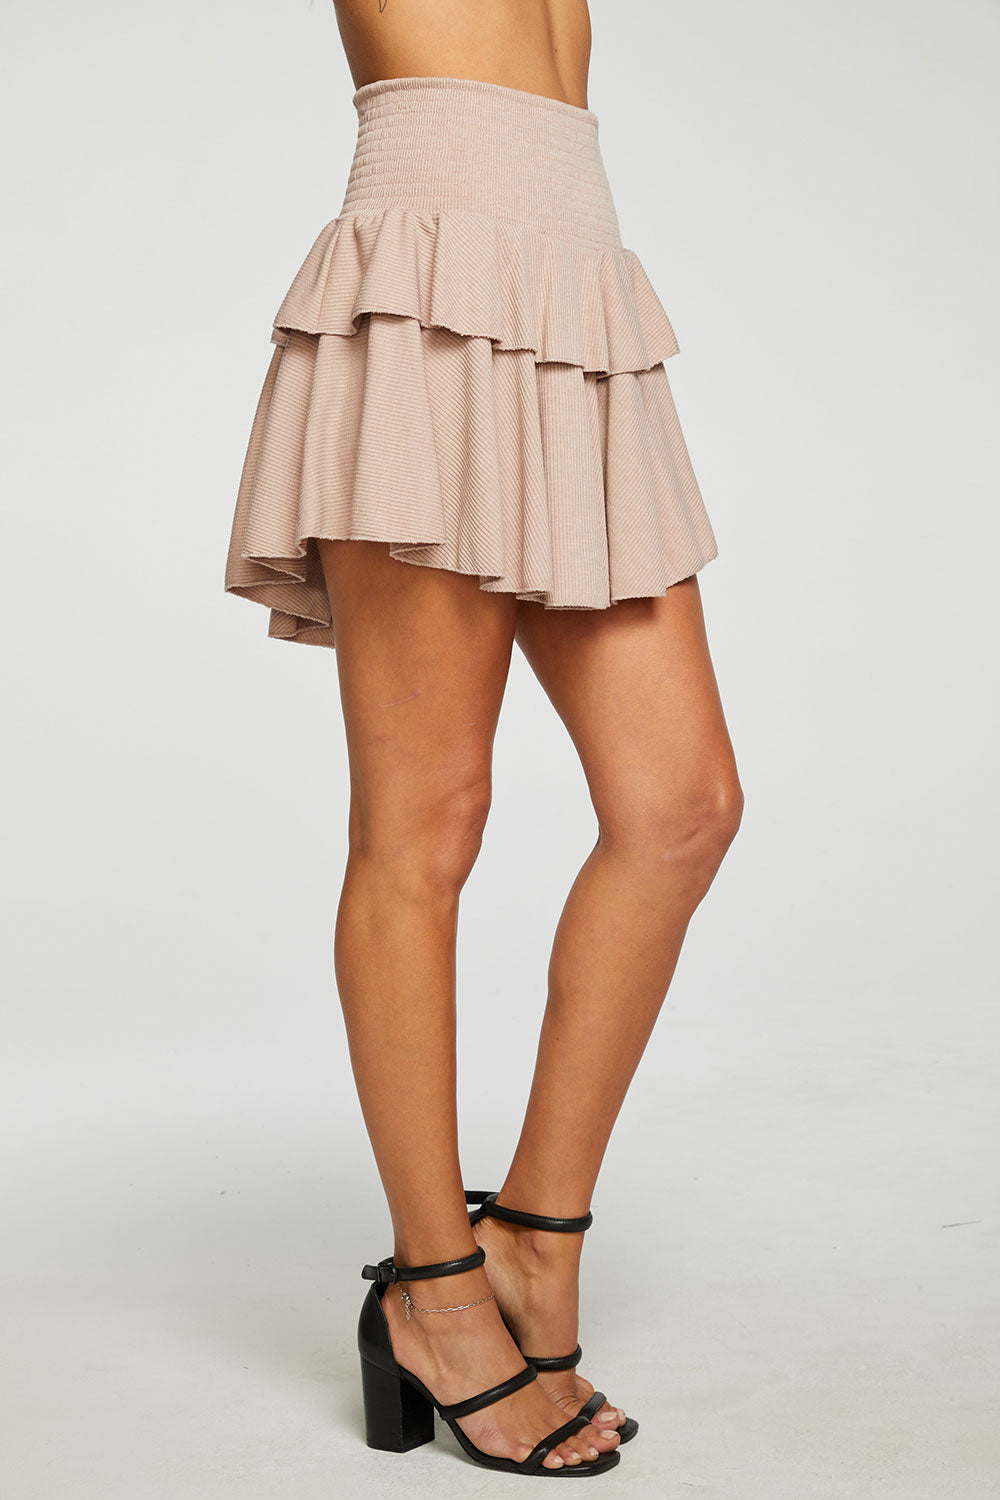 RPET Cozy Rib Flouncy Tiered Mini Skirt WOMENS - chaserbrand